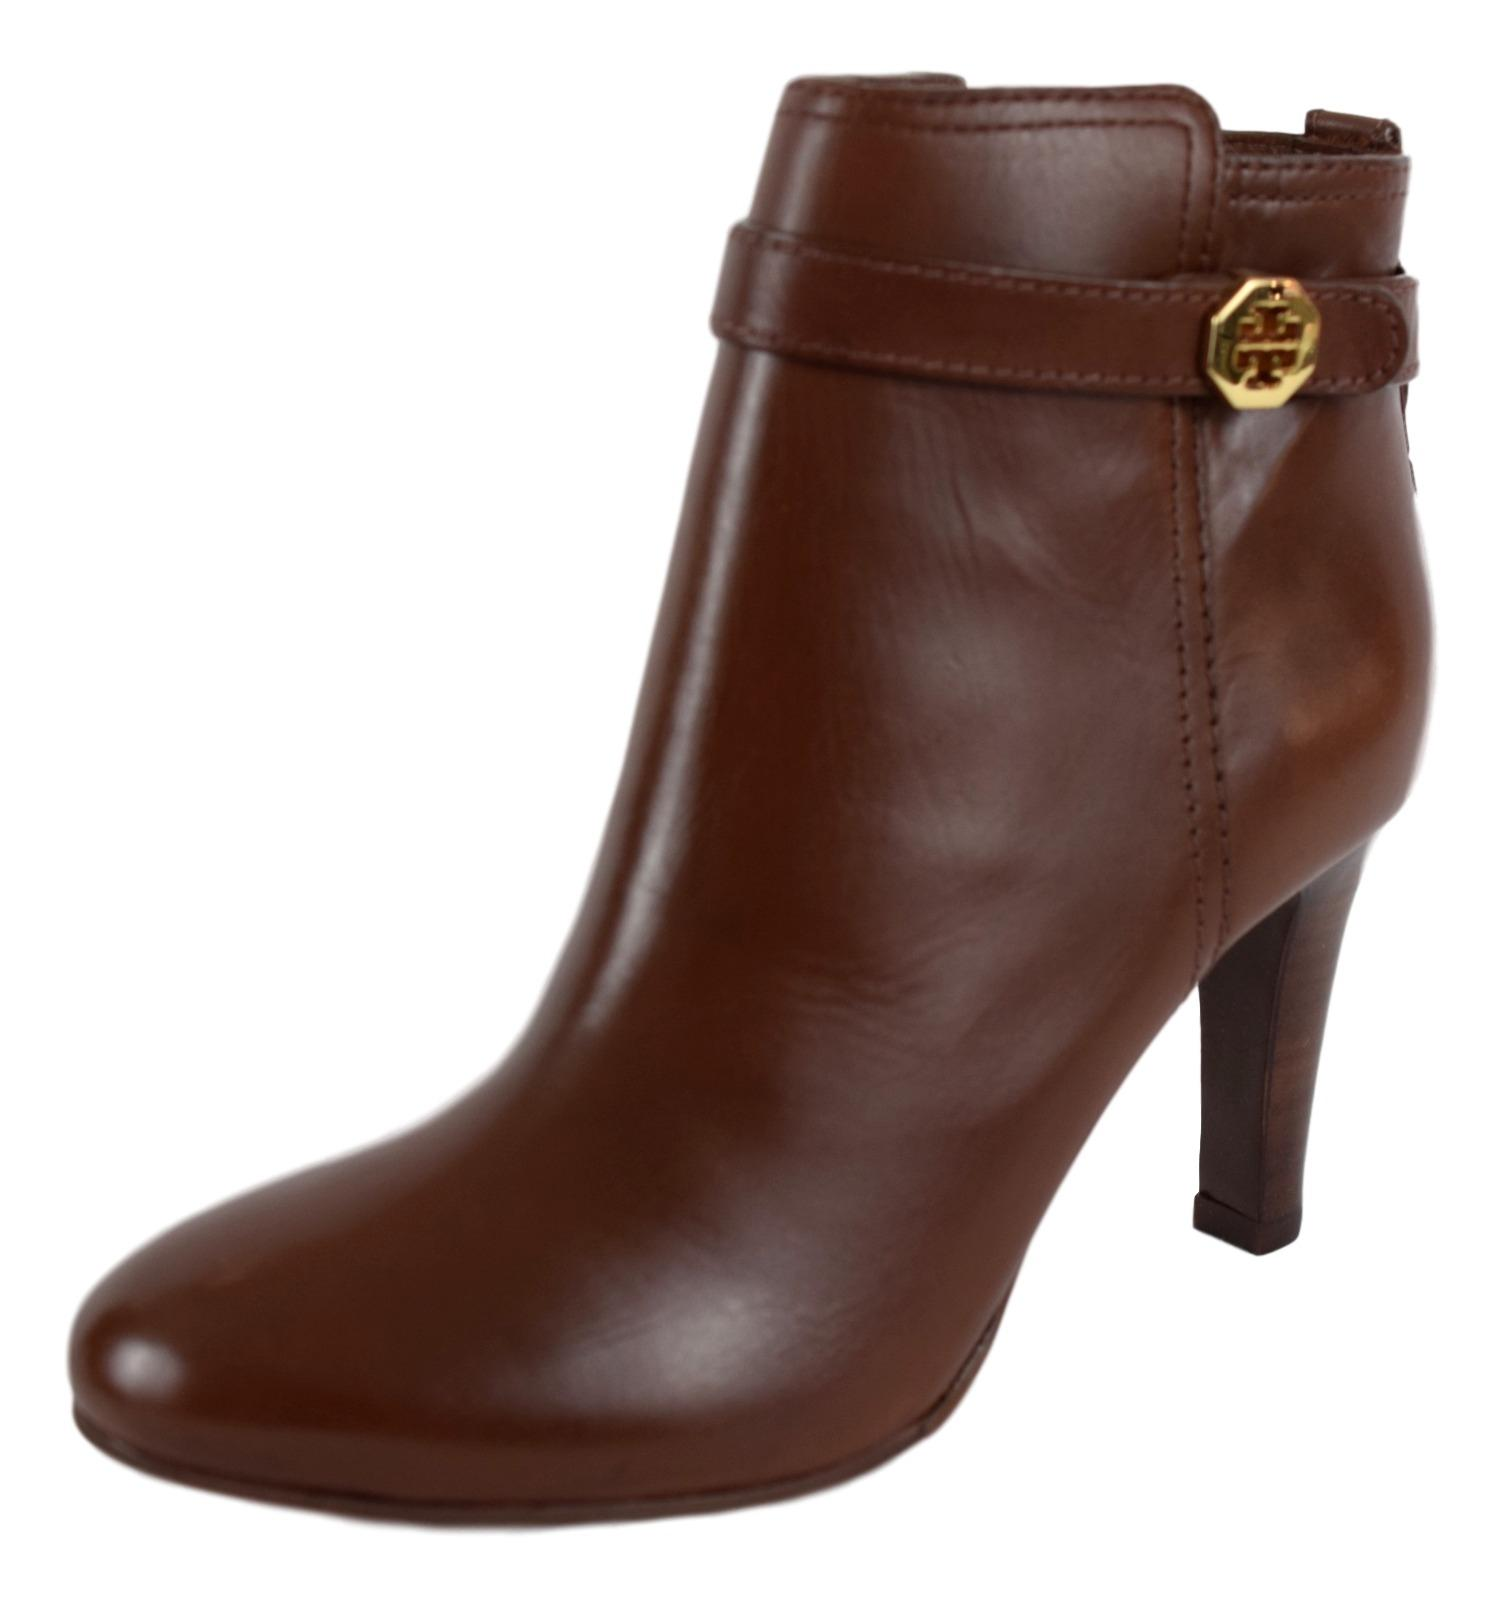 Tory Burch Buckled ankle boots wGPU76pipY